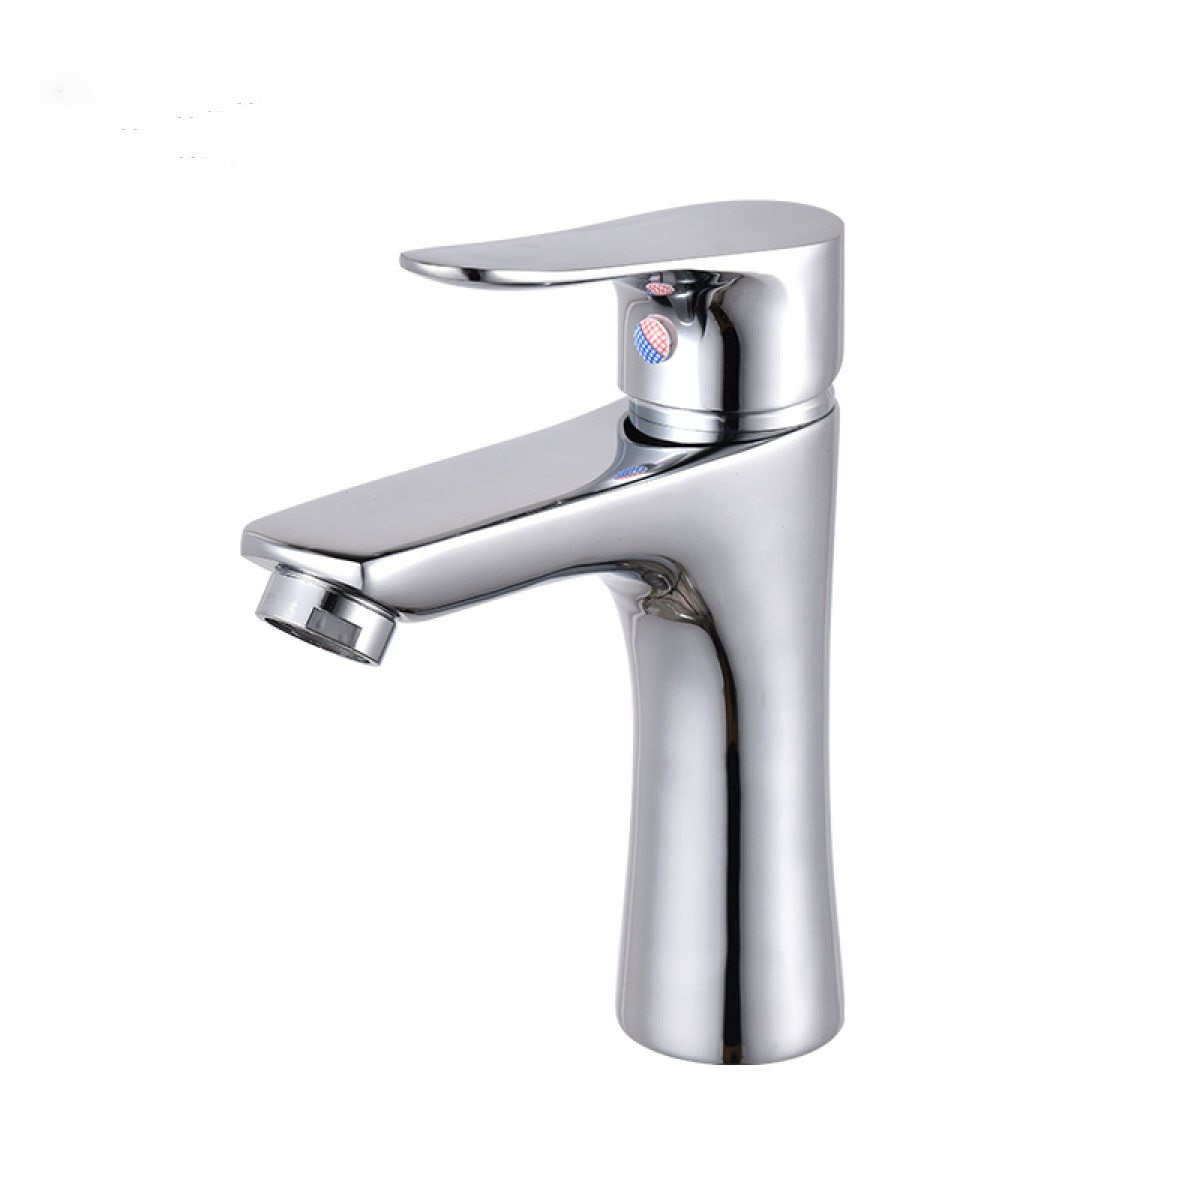 LDONGSH Basin Single Hole Copper Hot And Cold Electroplating Drawing Faucet Tap